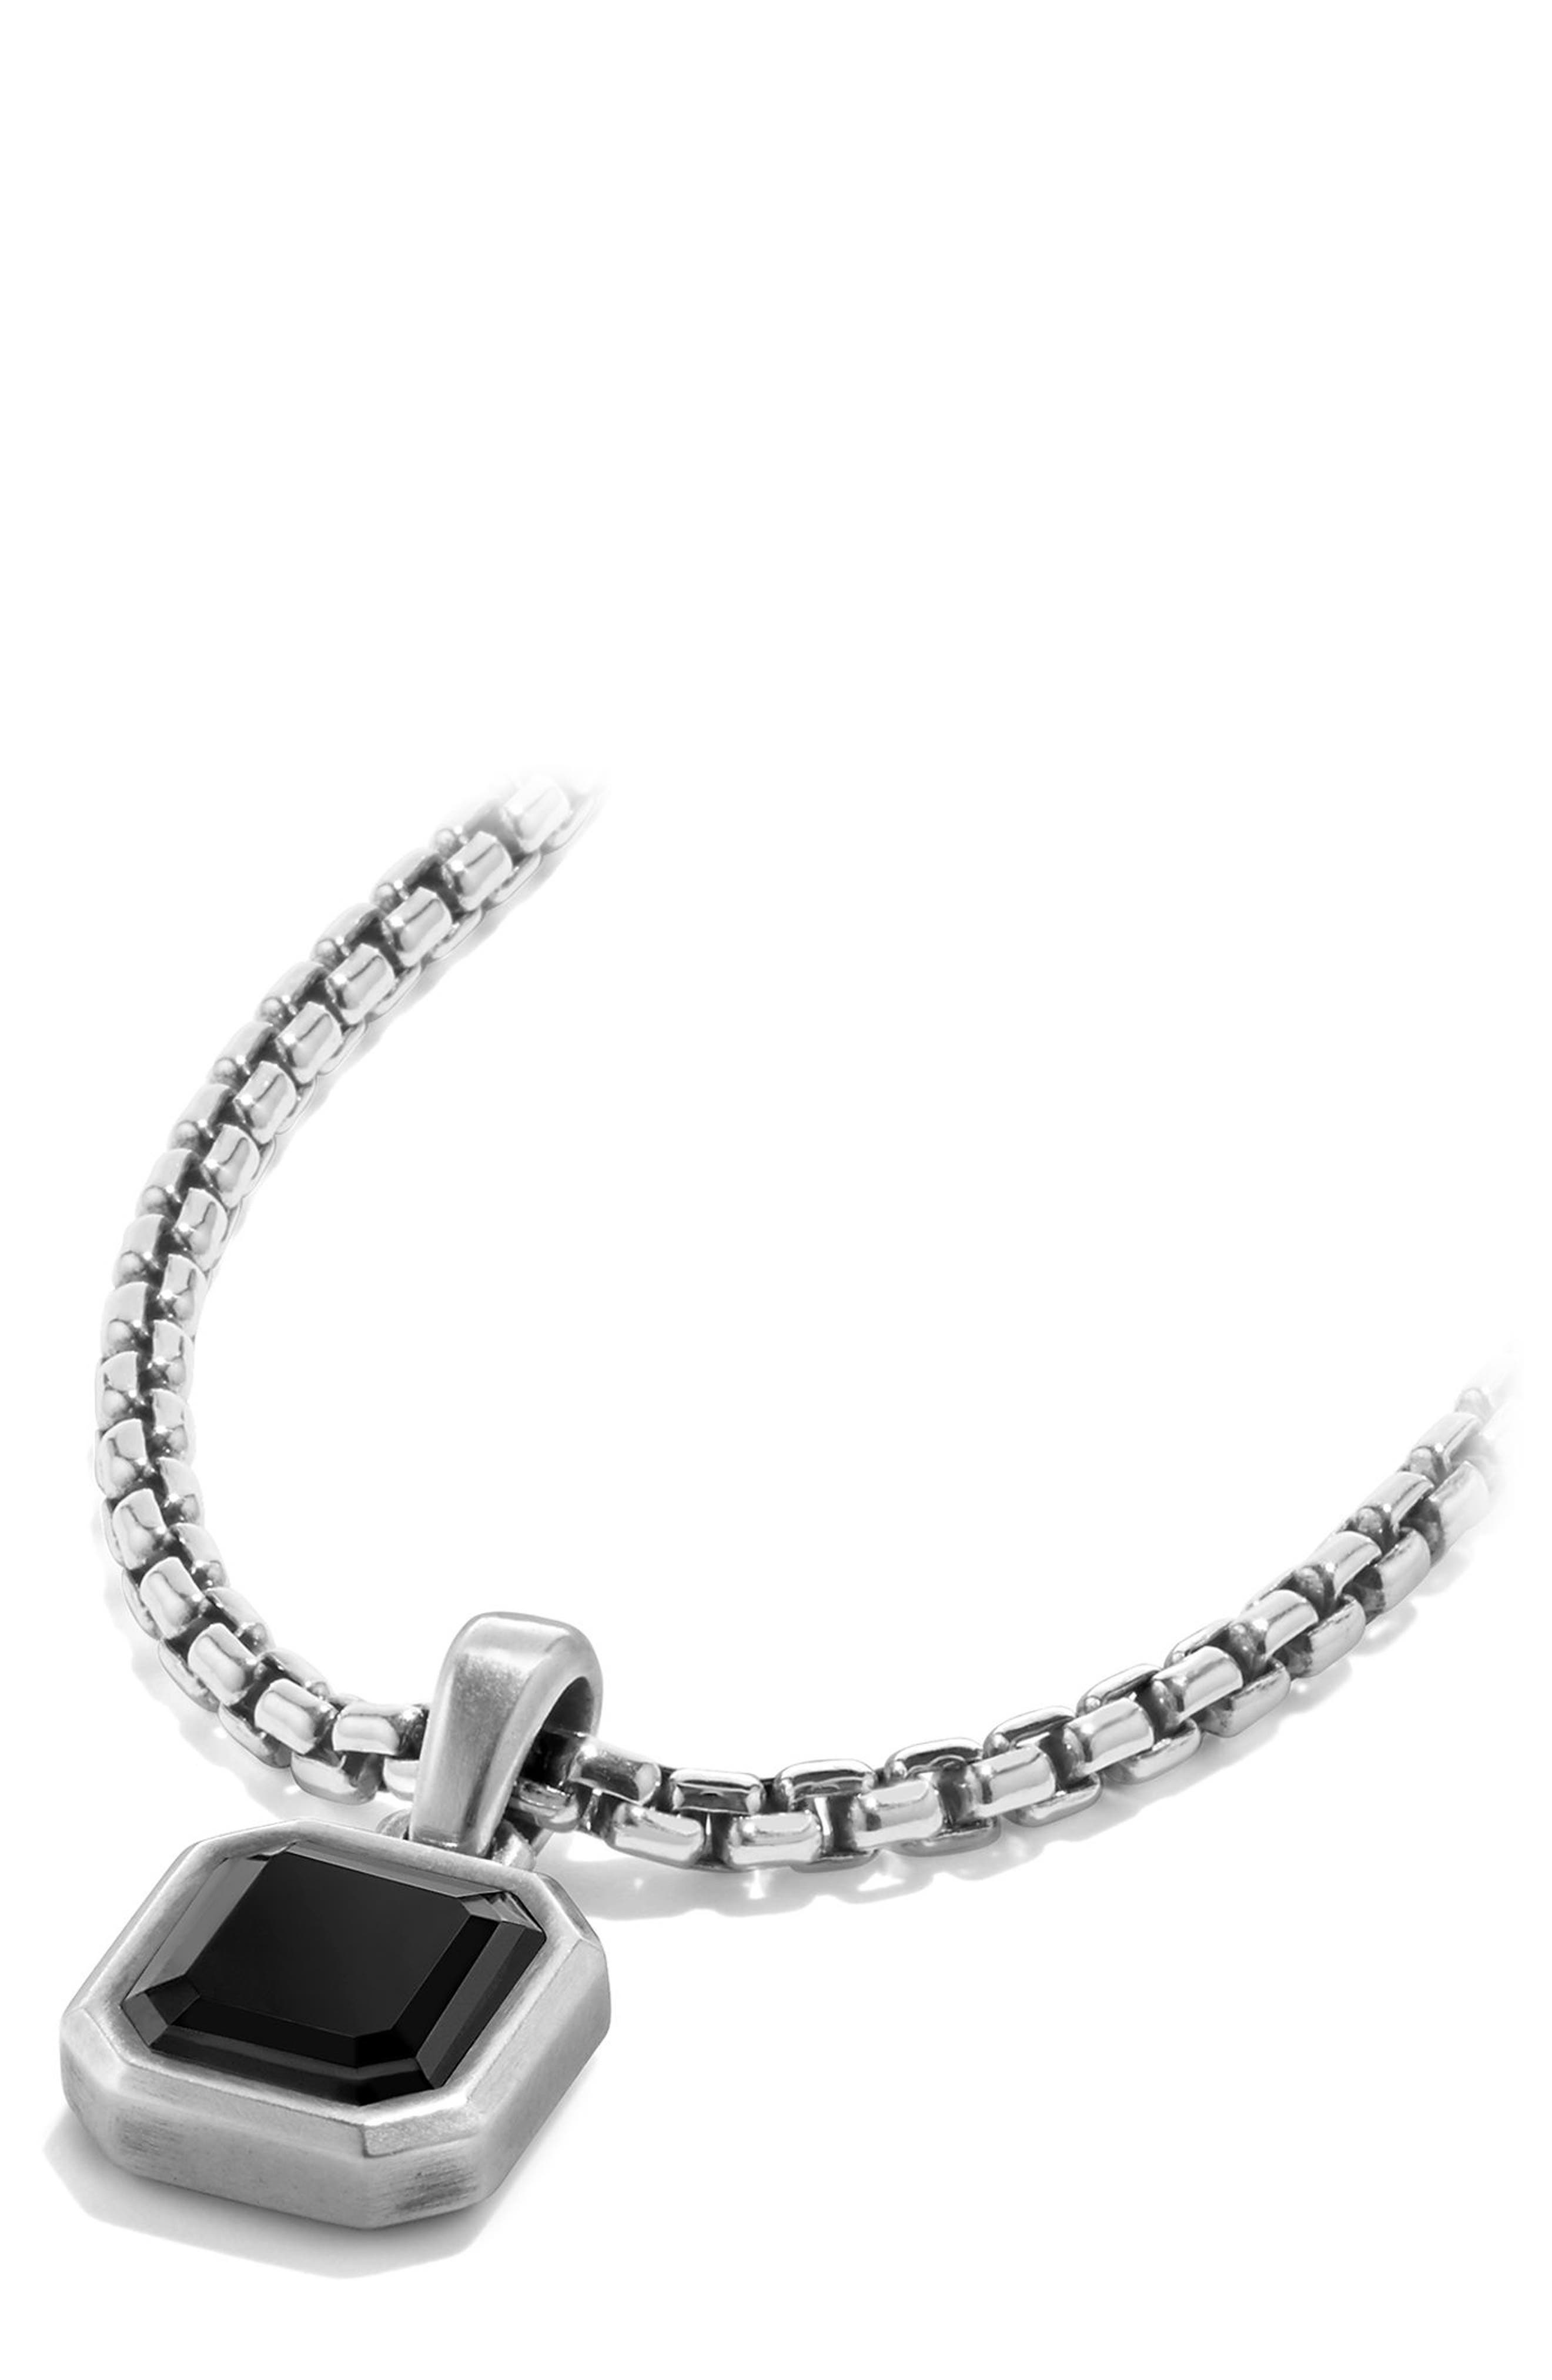 Emerald Cut Semiprecious Stone Amulet,                             Alternate thumbnail 4, color,                             SILVER/ BLACK ONYX